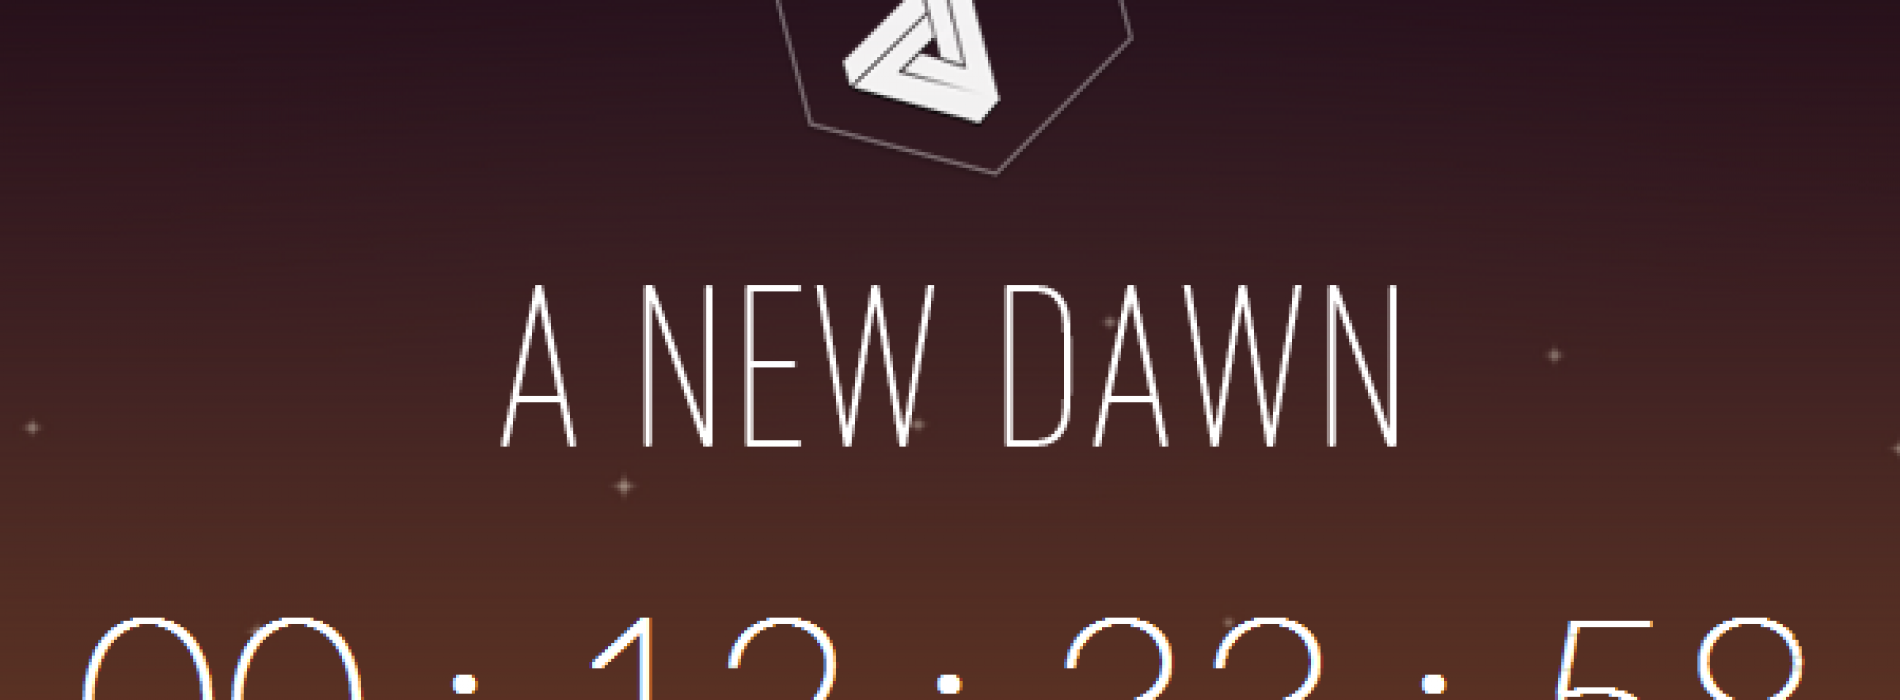 "doubleTwist updates Android app, but what is this ""new dawn""?"